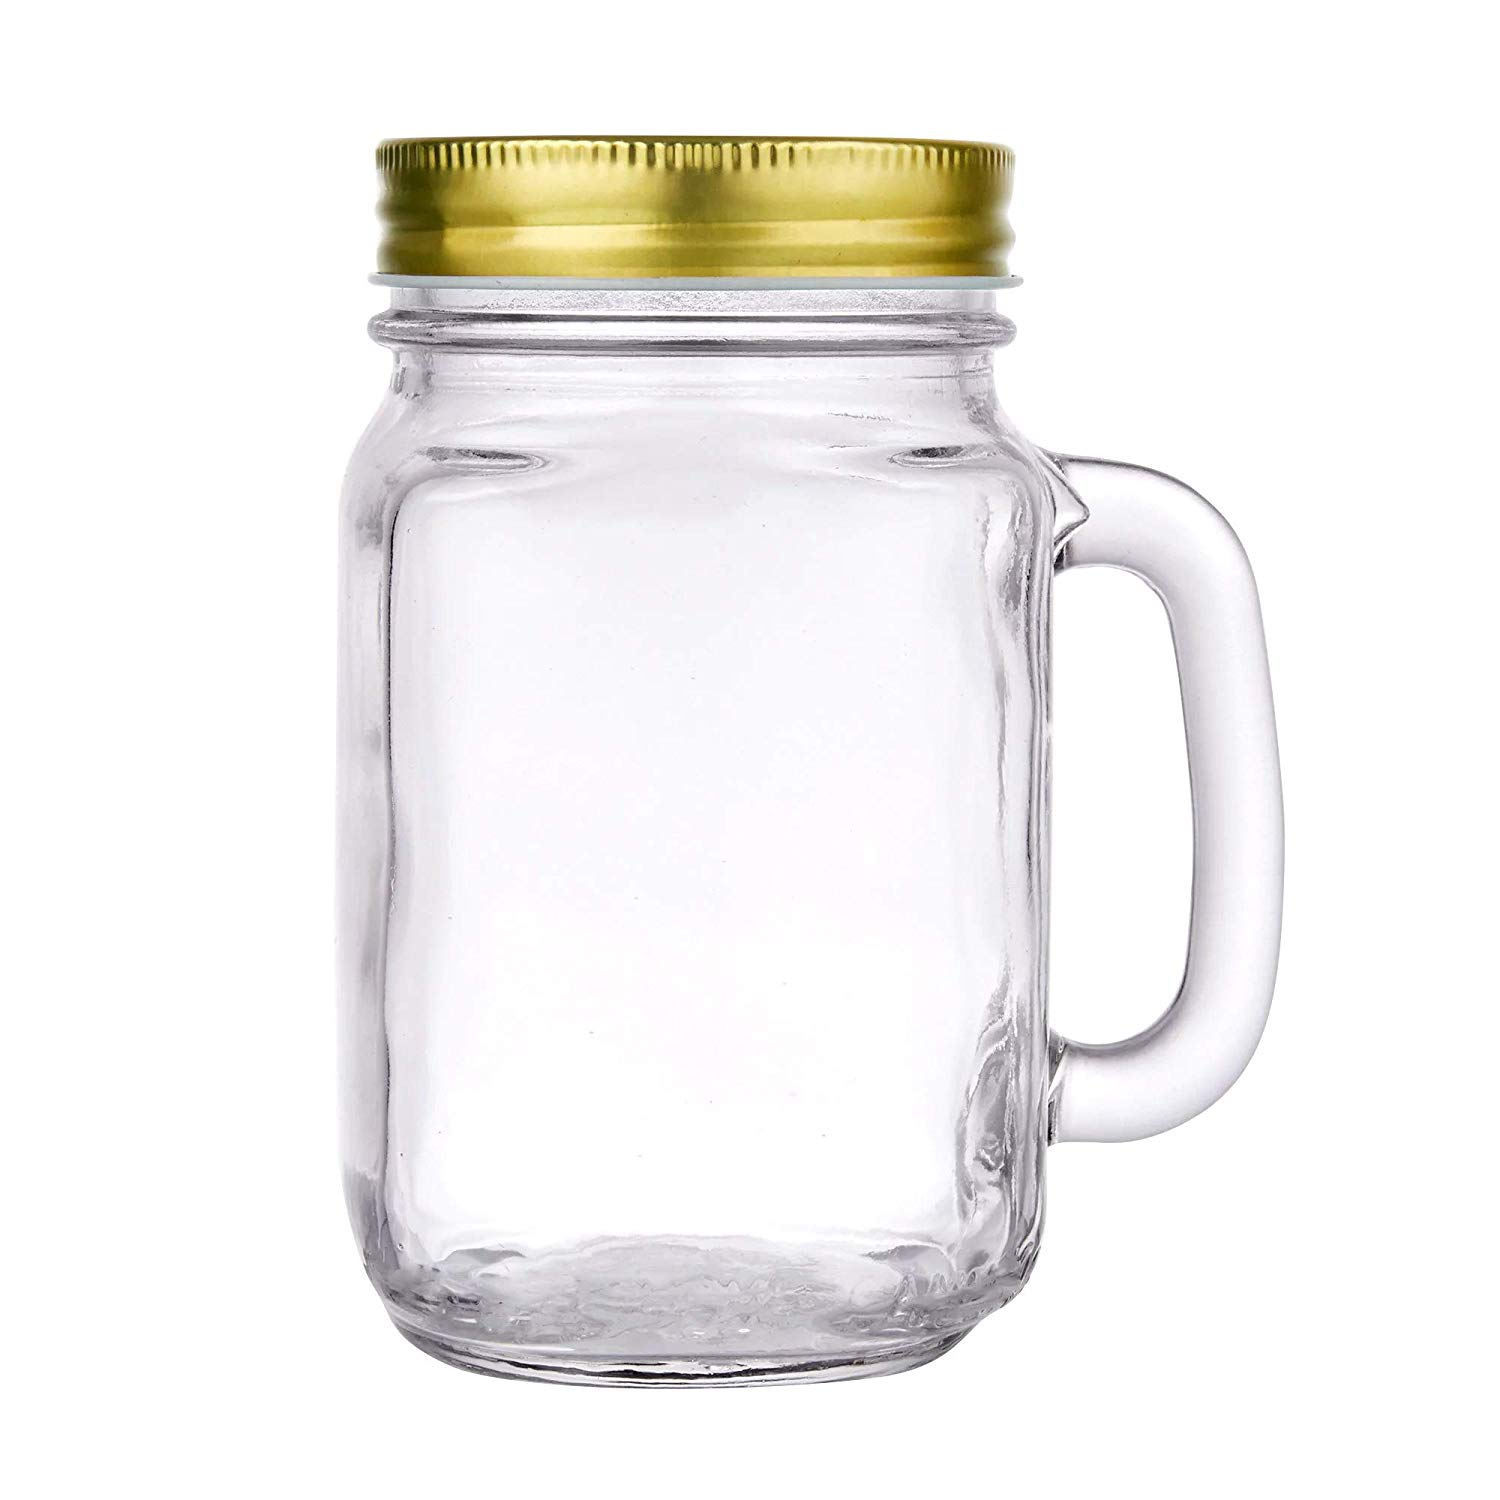 Superbazaar Glass Mason Jar Mug Shot With Handles And Gold Metal Lids 500 Ml - 1 Pc